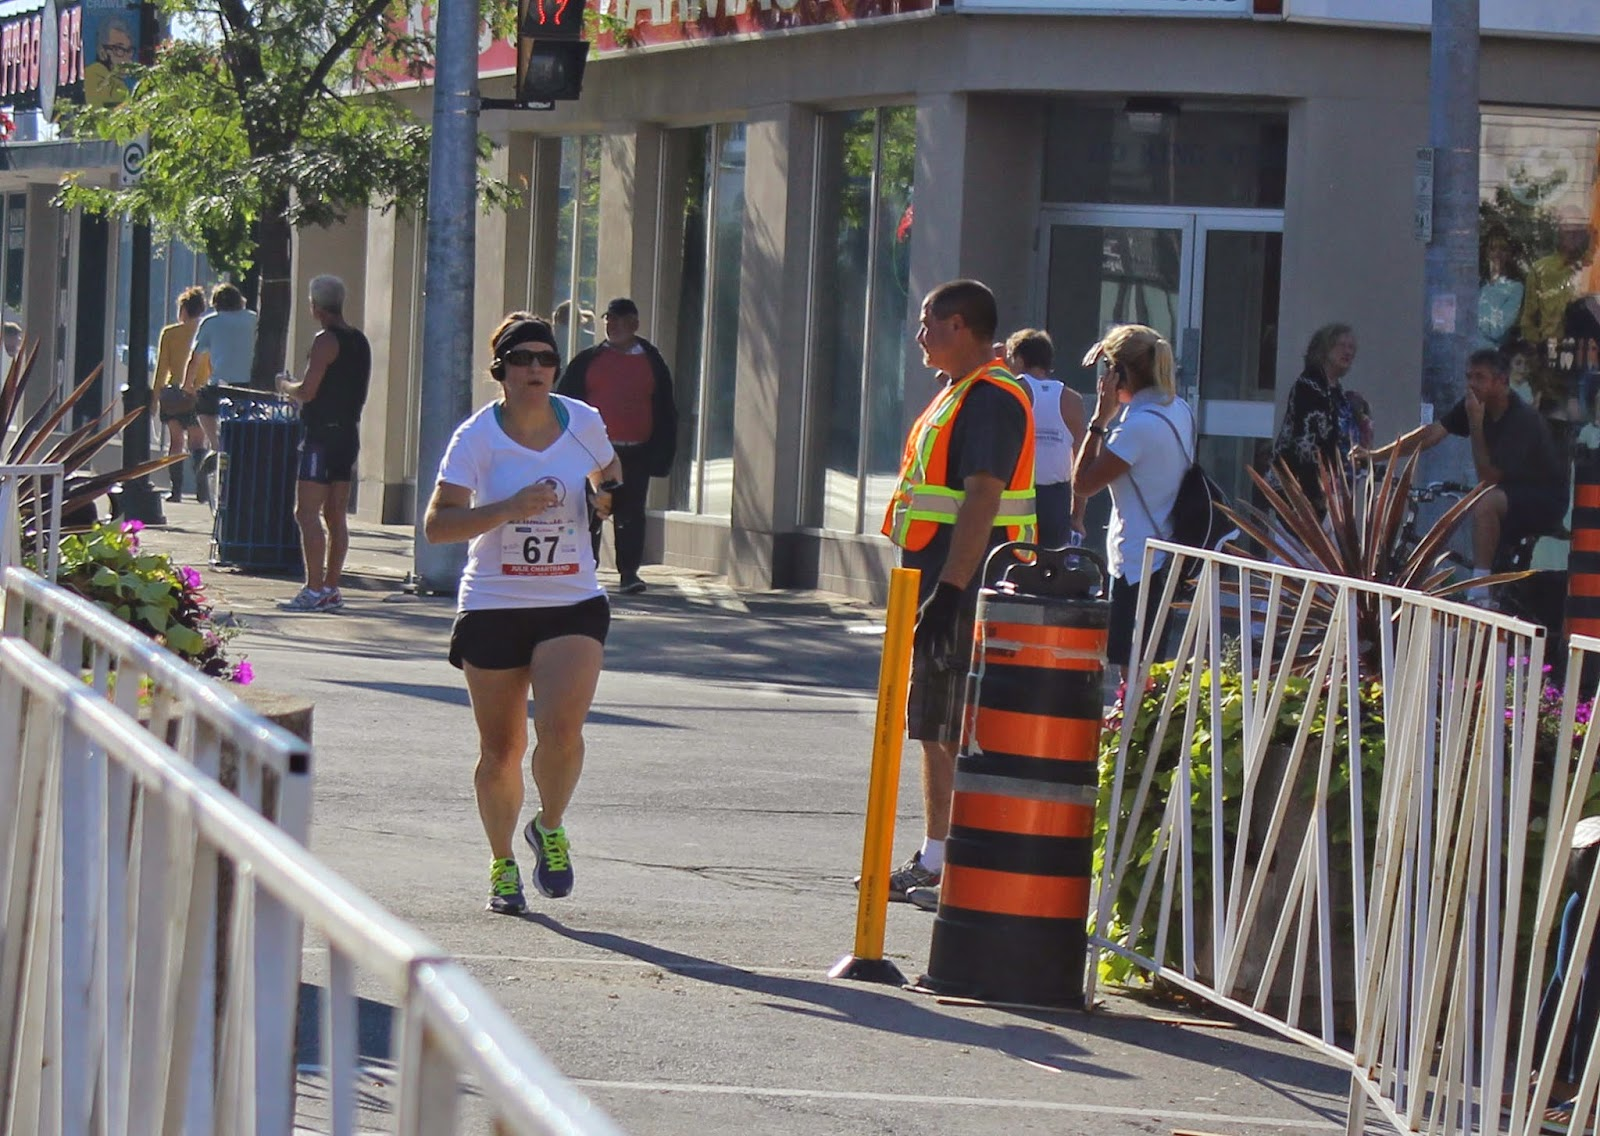 Photo of Julie crossing finish line